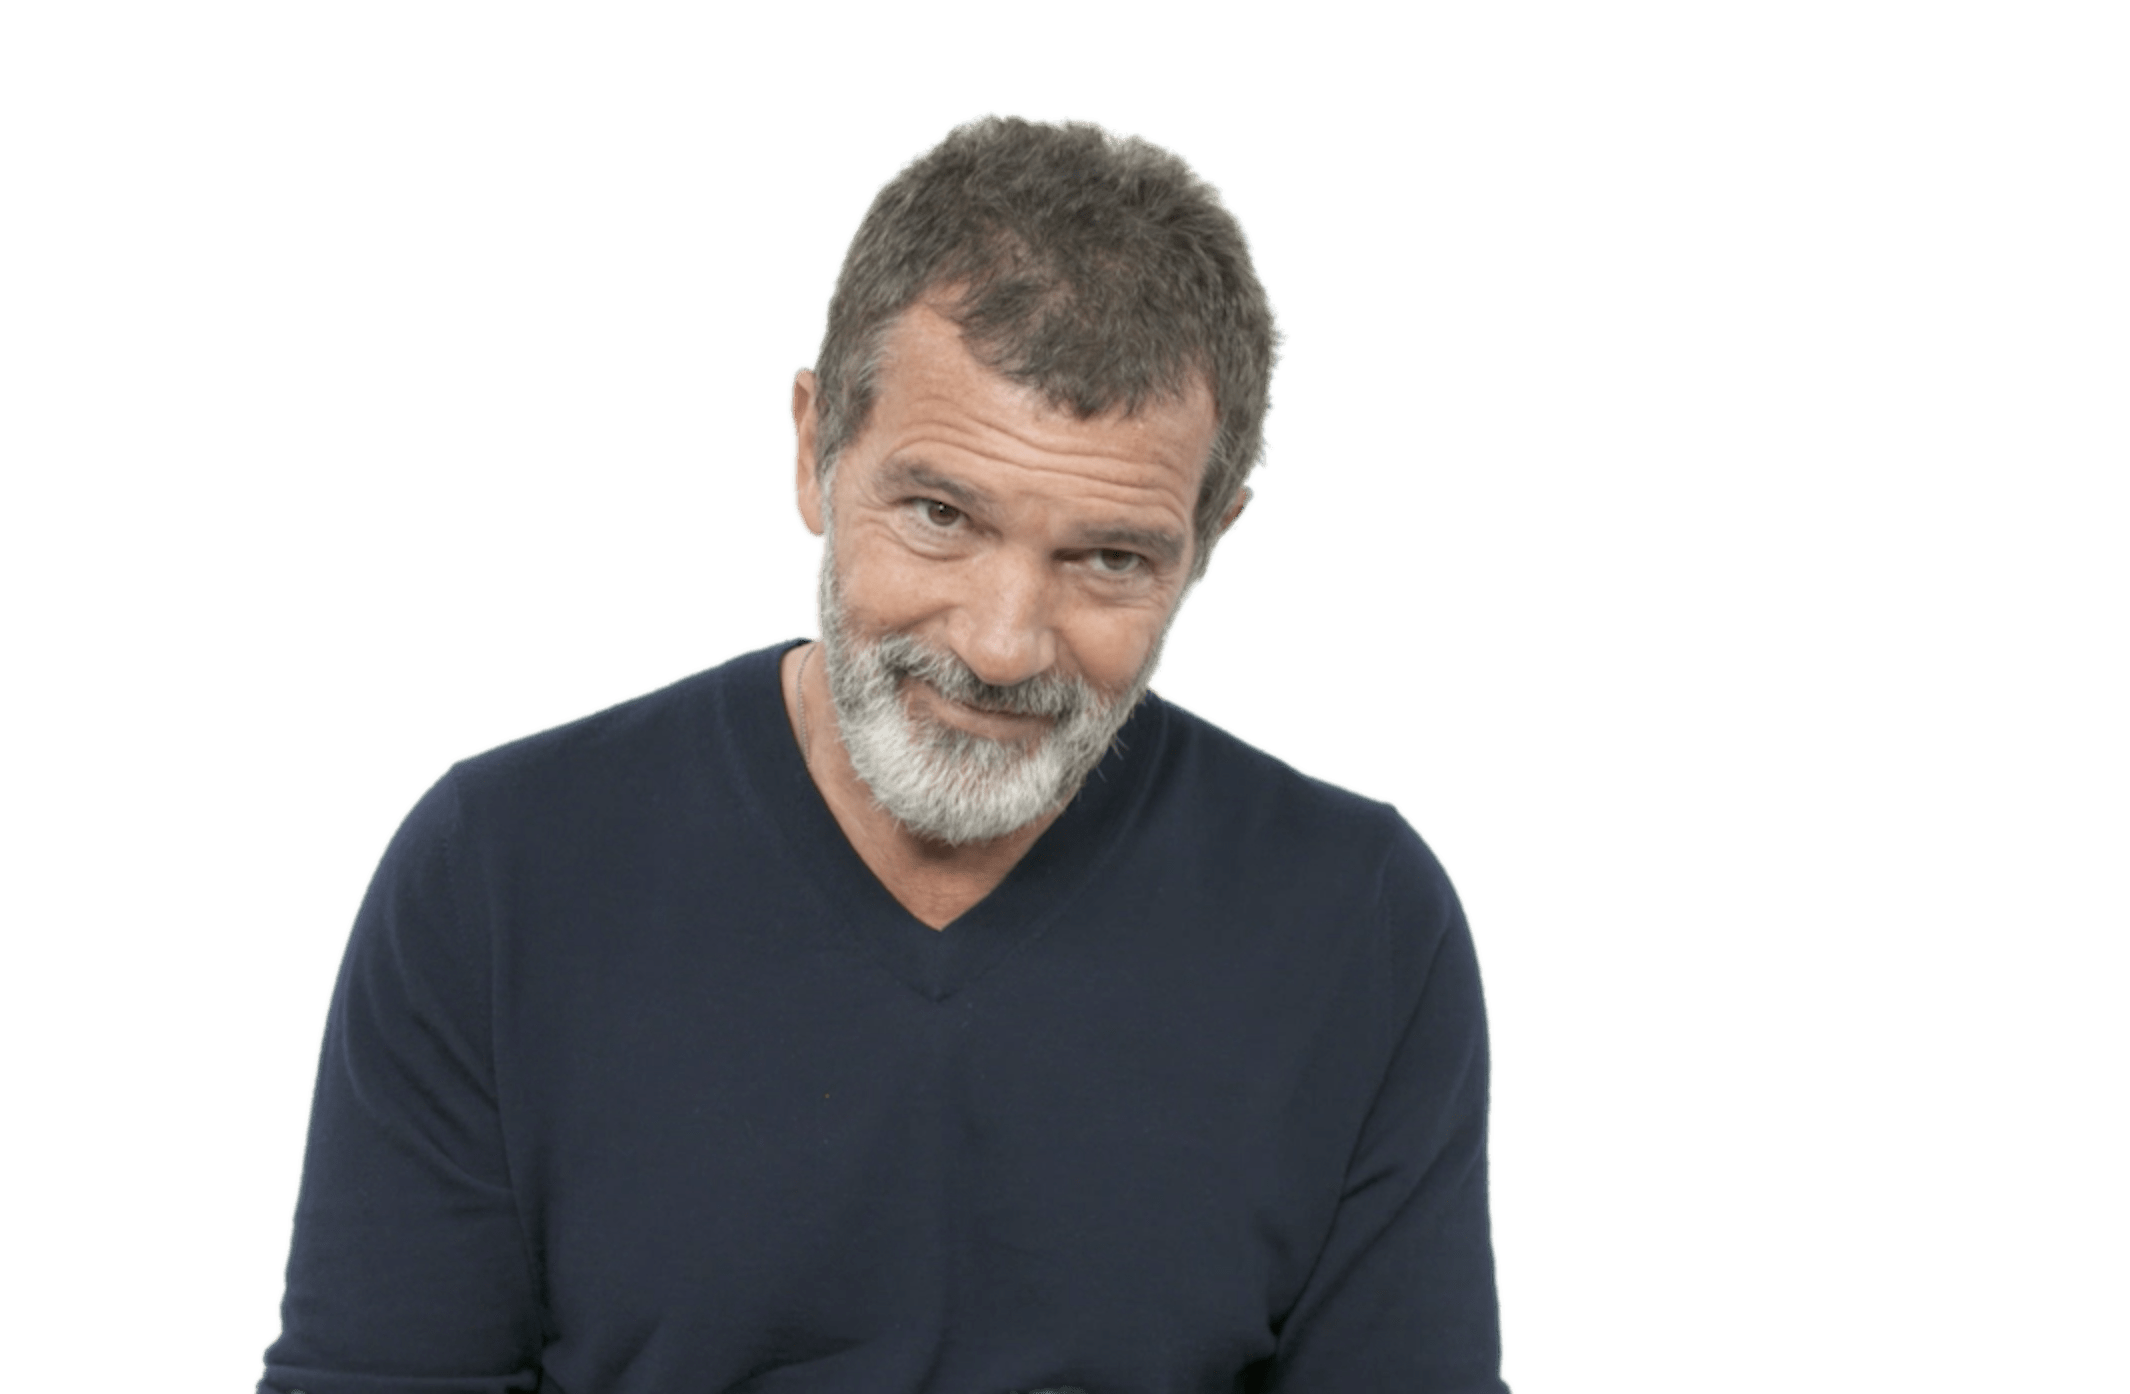 Antonio Banderas Smiling transparent PNG.